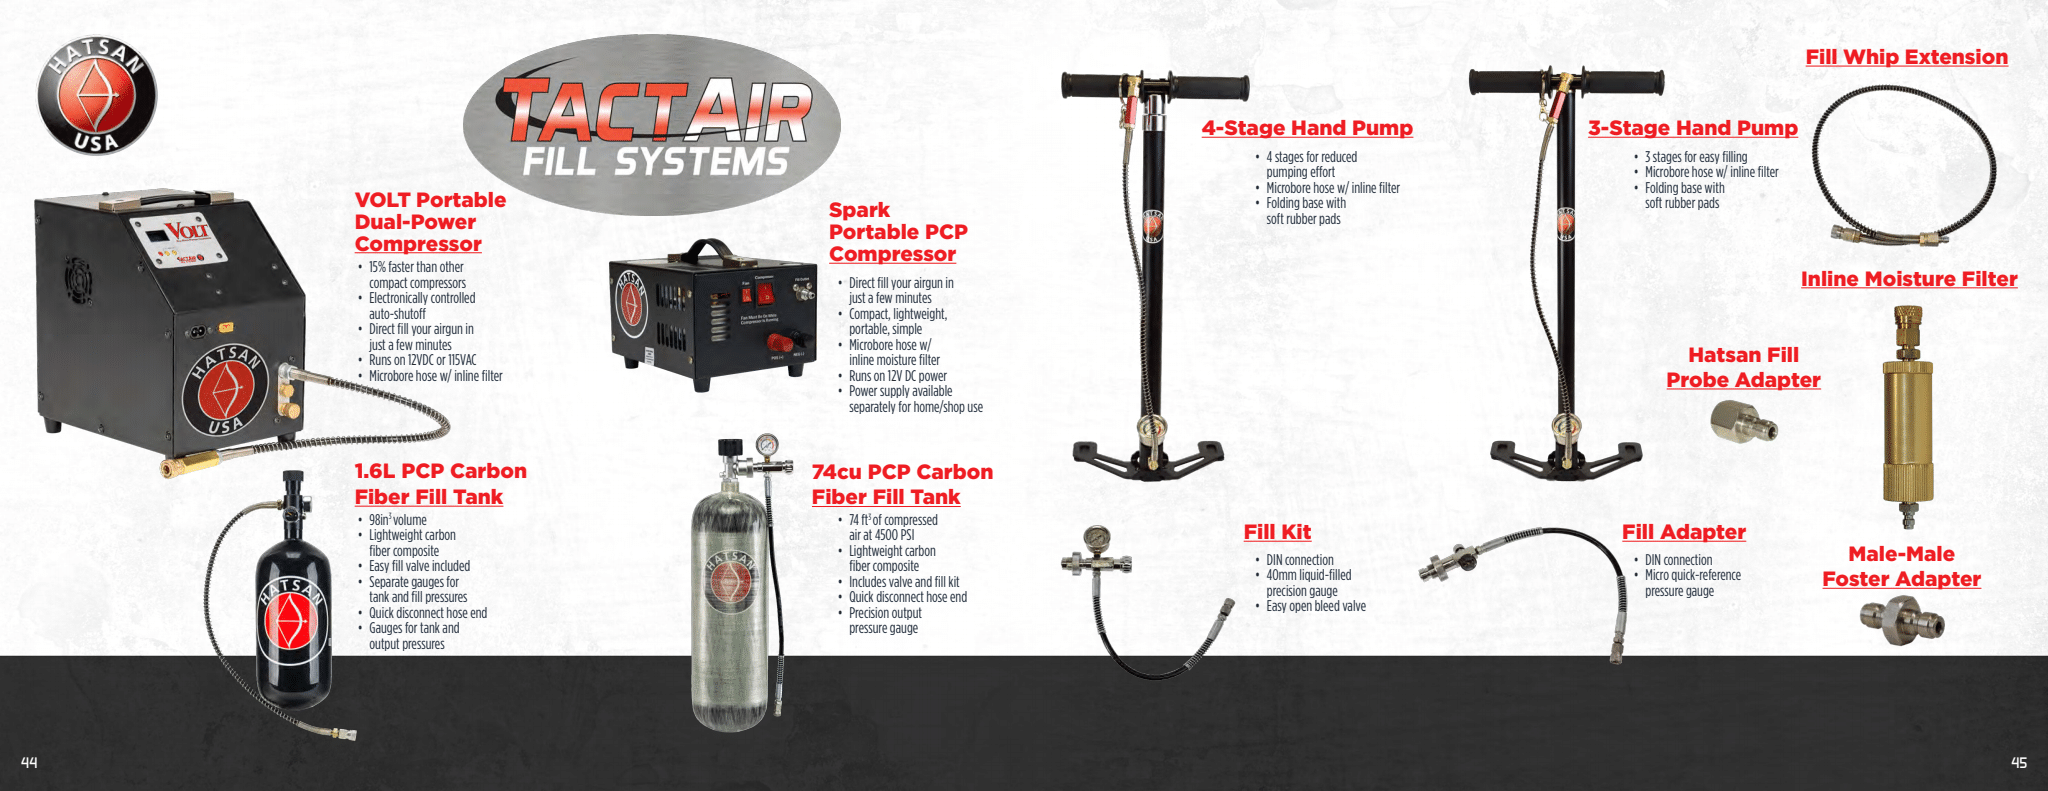 Fill Systems